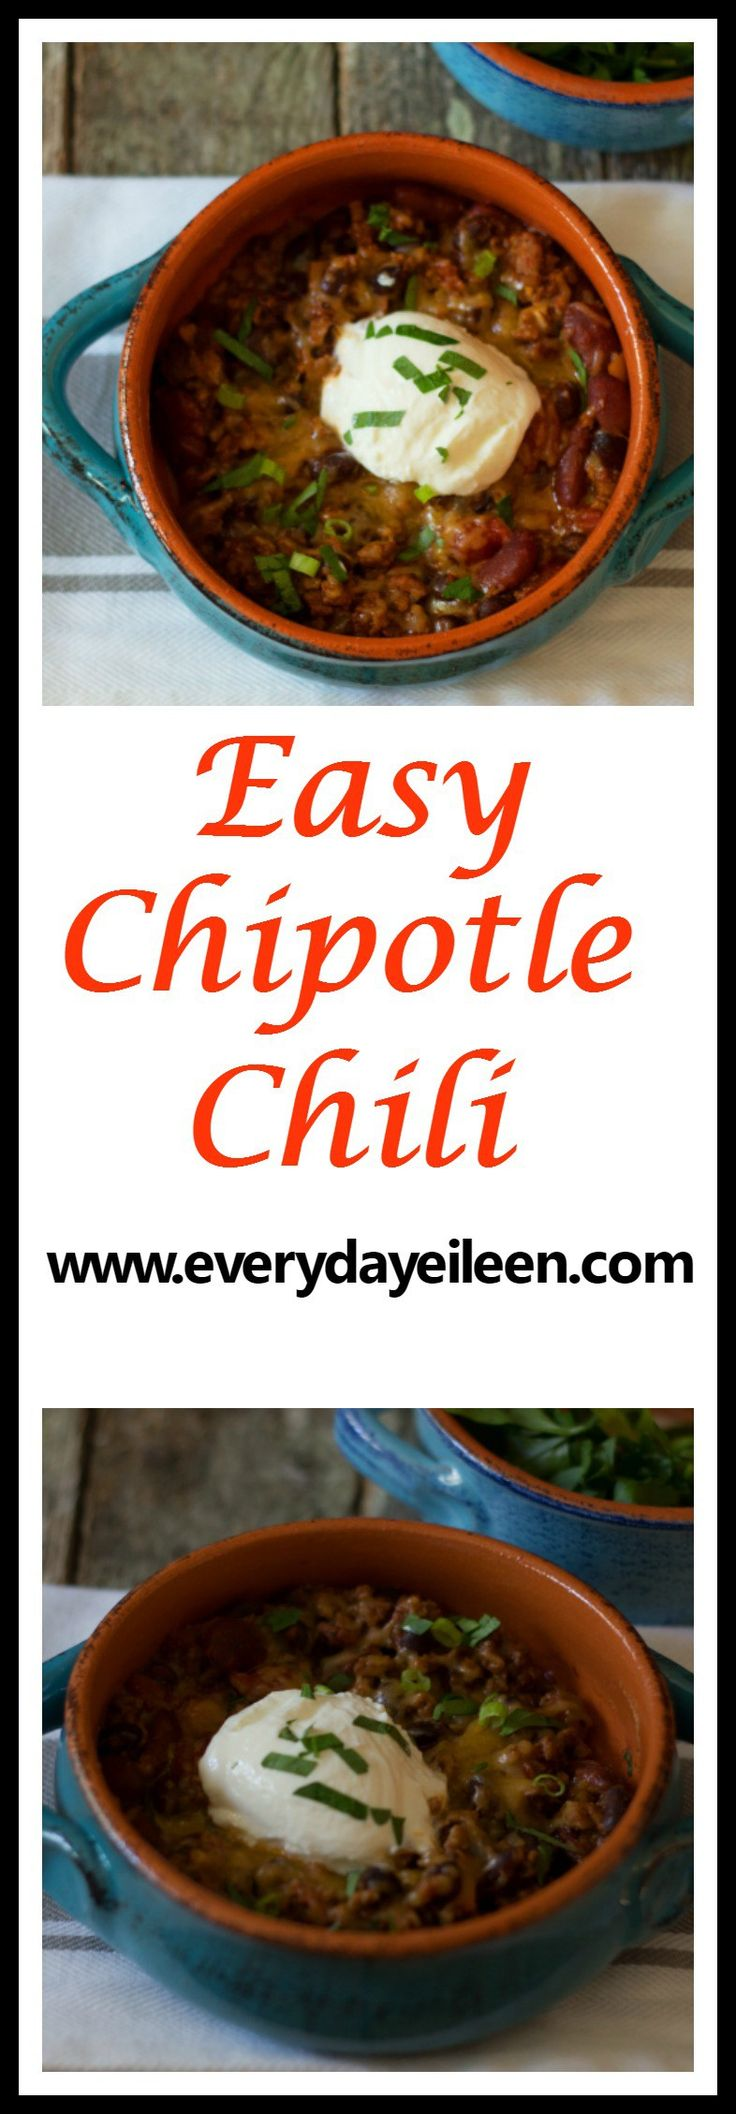 Easy chipotle chili is an easy crowd pleasing meal! Using lean ground sirloin and beans makes for a healthier lighter chili.  Kicked up flavor from chipotle chilis in adobo gives a perfect spice.  Freezer friendly